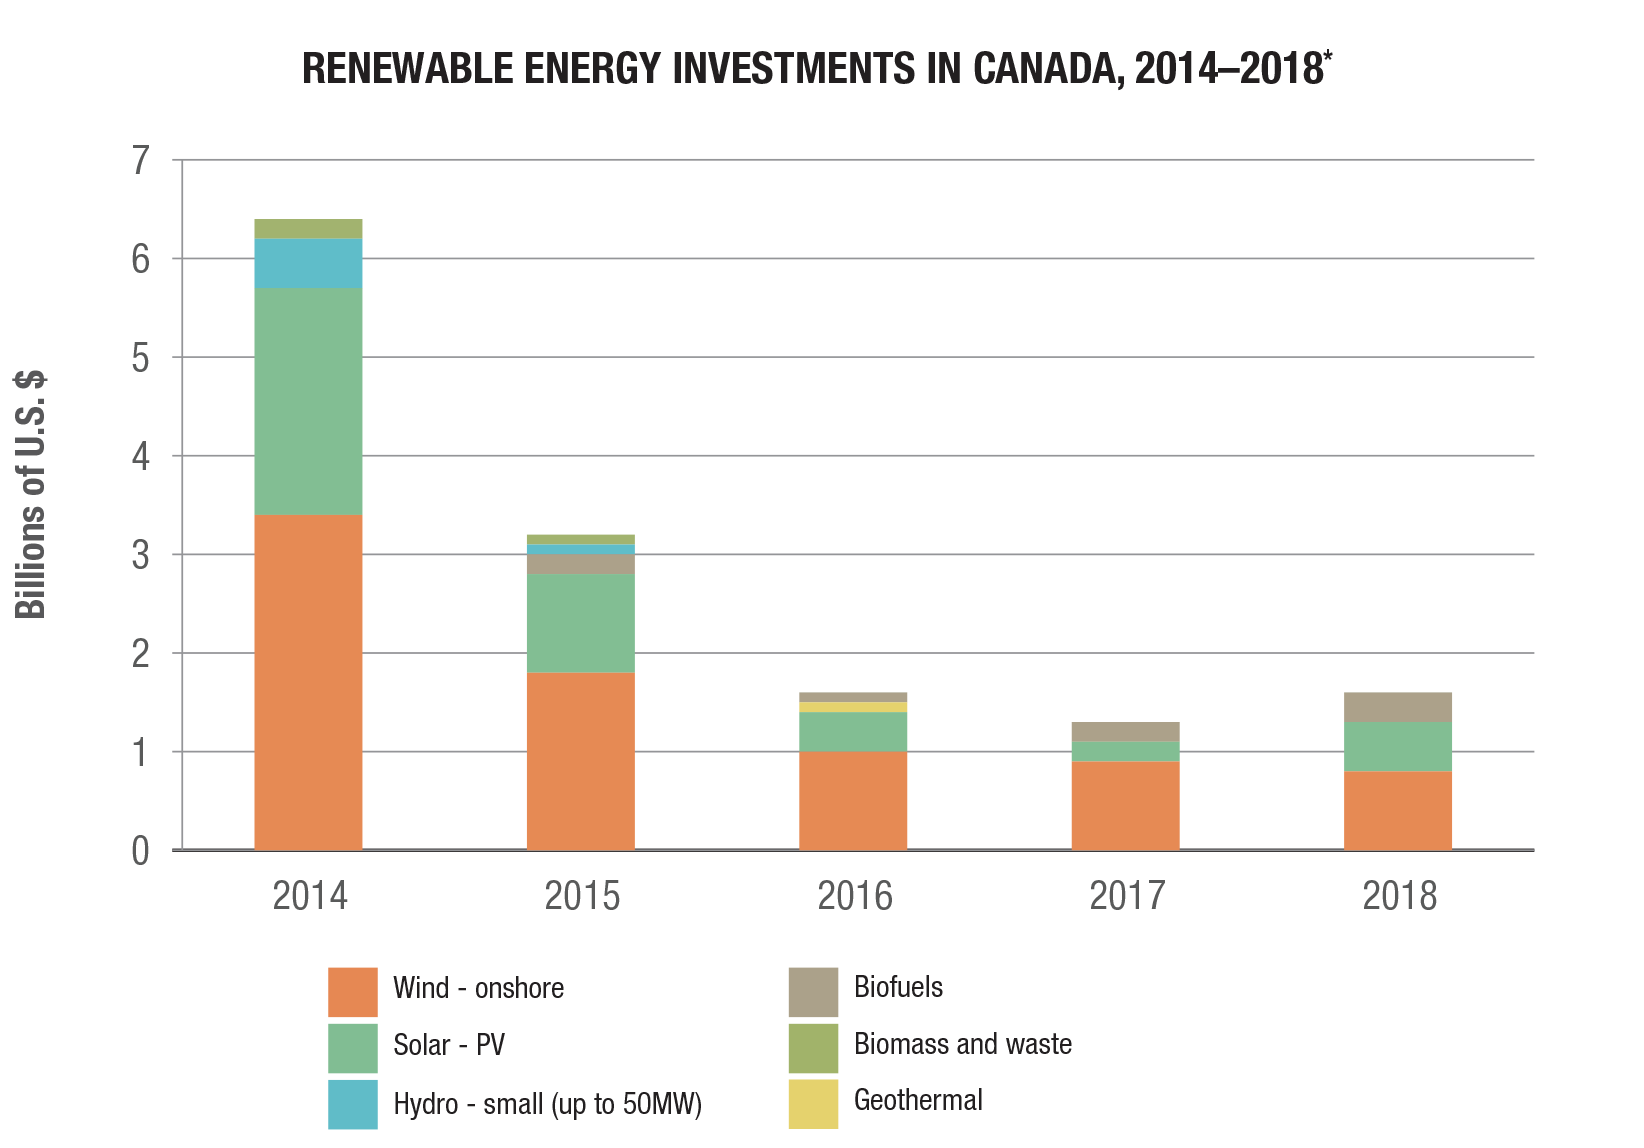 Renewable energy investment in Canaad 2014-2018 bar graph